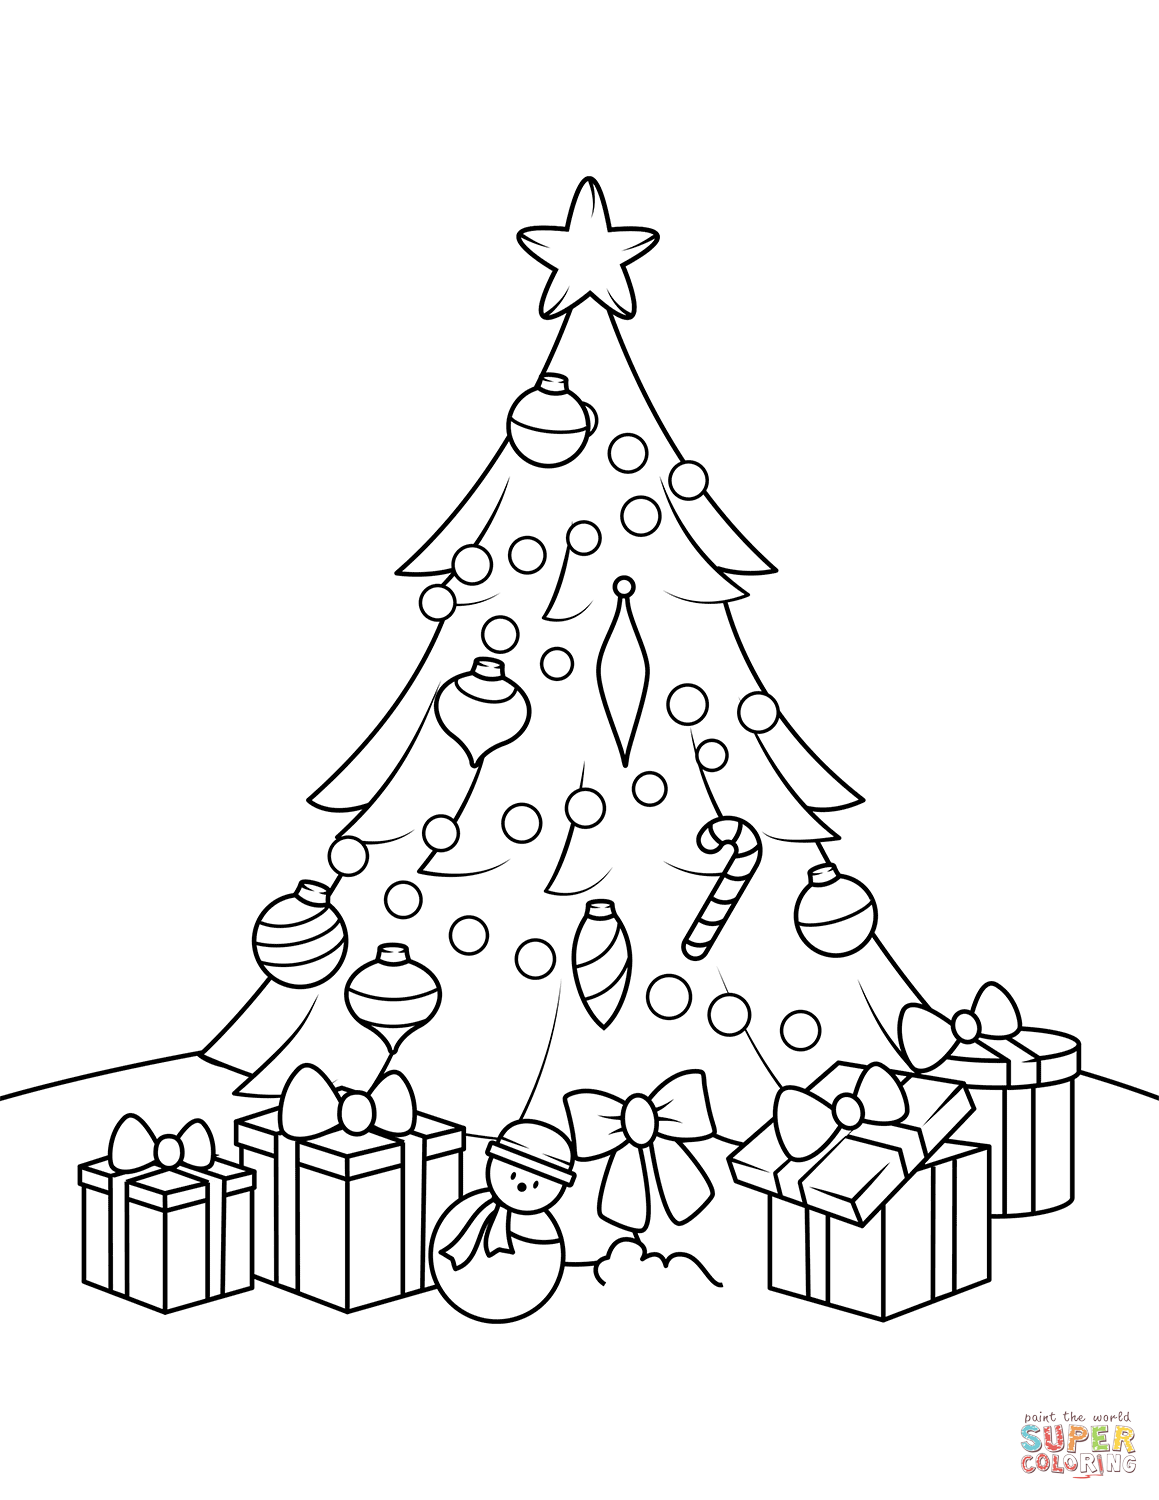 Christmas Tree With Presents Coloring Page From Christmas Tree Category Selec Christmas Tree Coloring Page Tree Coloring Page Christmas Present Coloring Pages